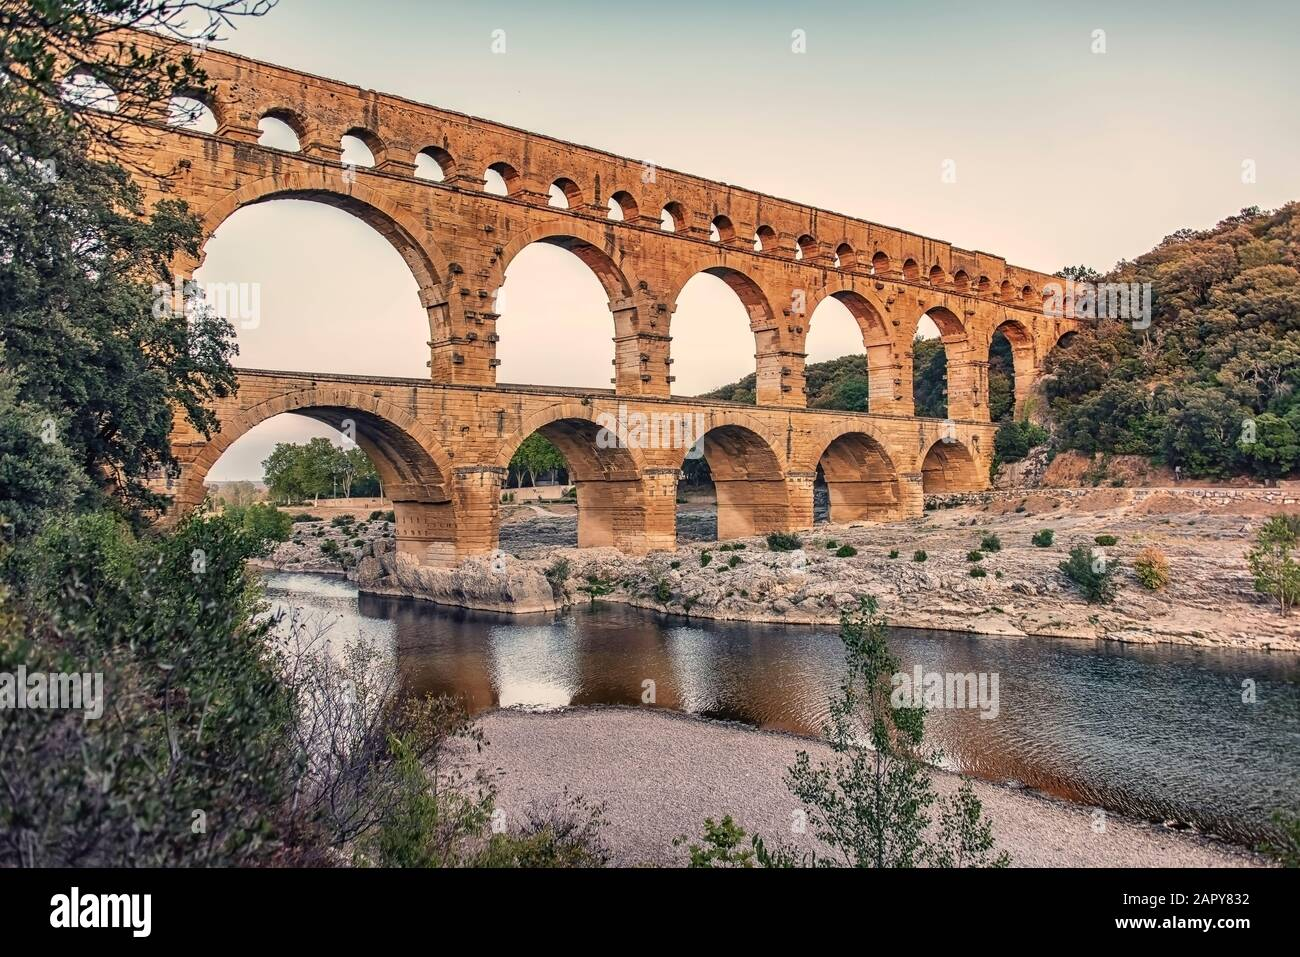 Pont du Gard in France, an UNESCO world heritage site Stock Photo